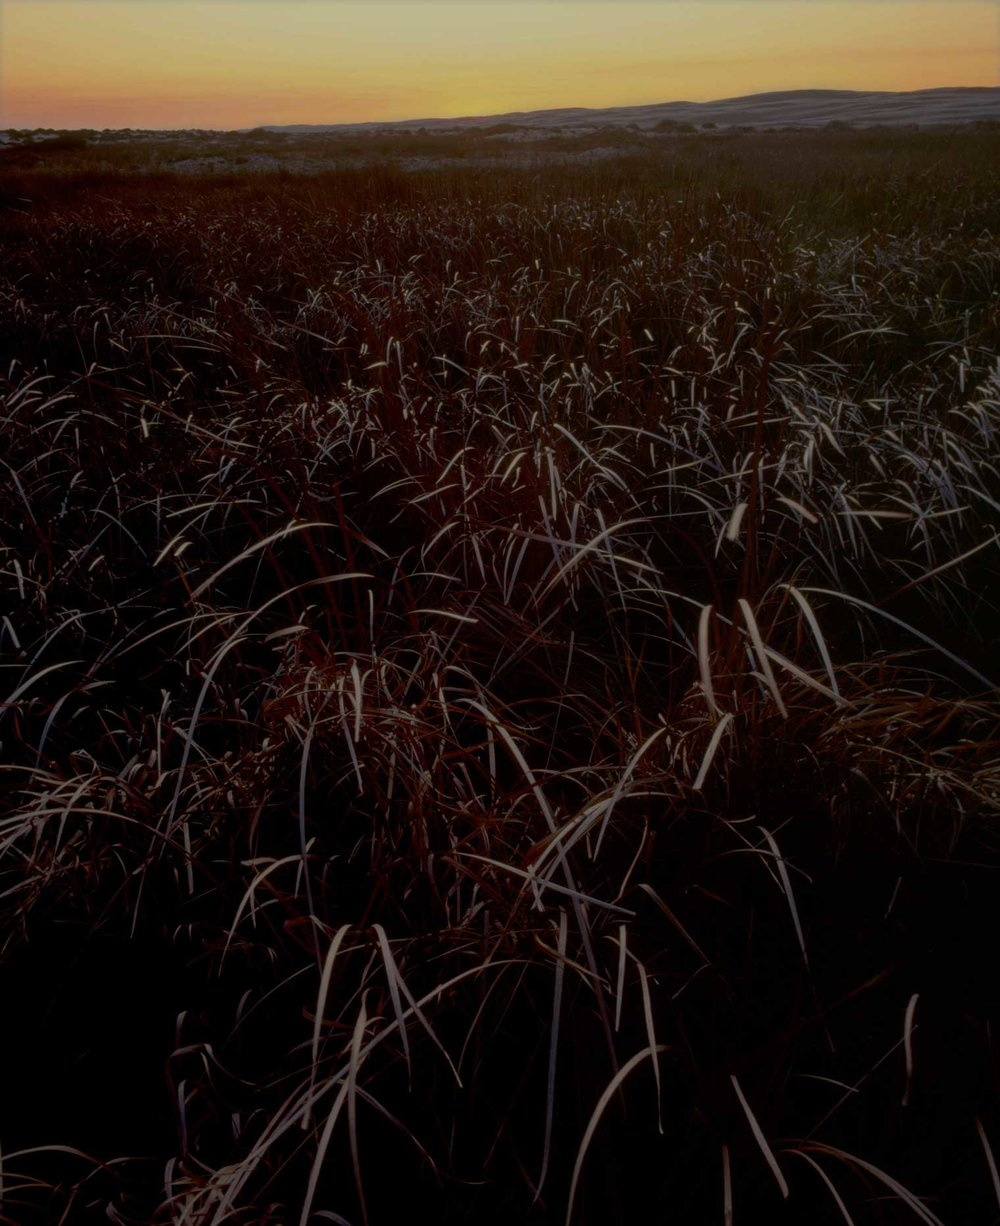 reeds,-sunset-stockton-bight-.jpg